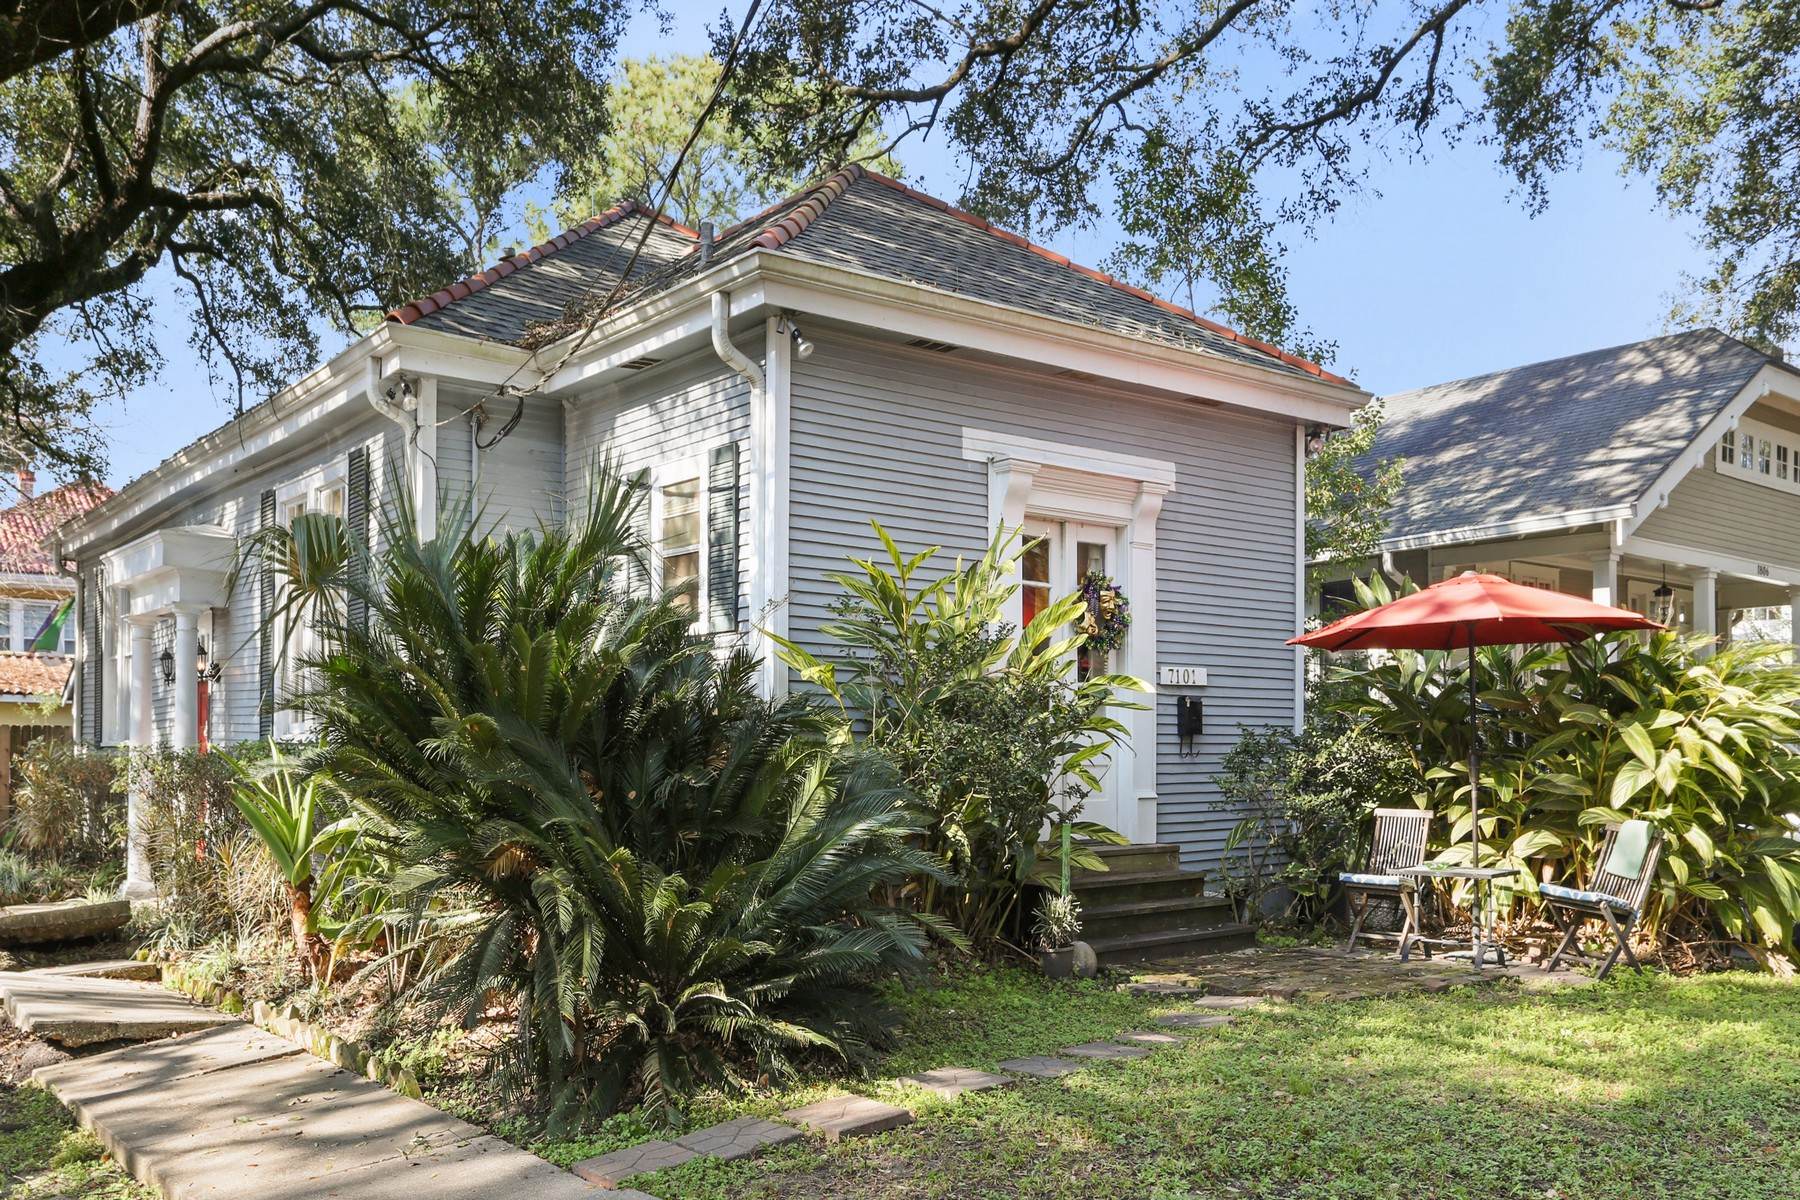 Multi-Family Home for Sale at 7101 Hickory Street 7101 Hickory St New Orleans, Louisiana 70118 United States